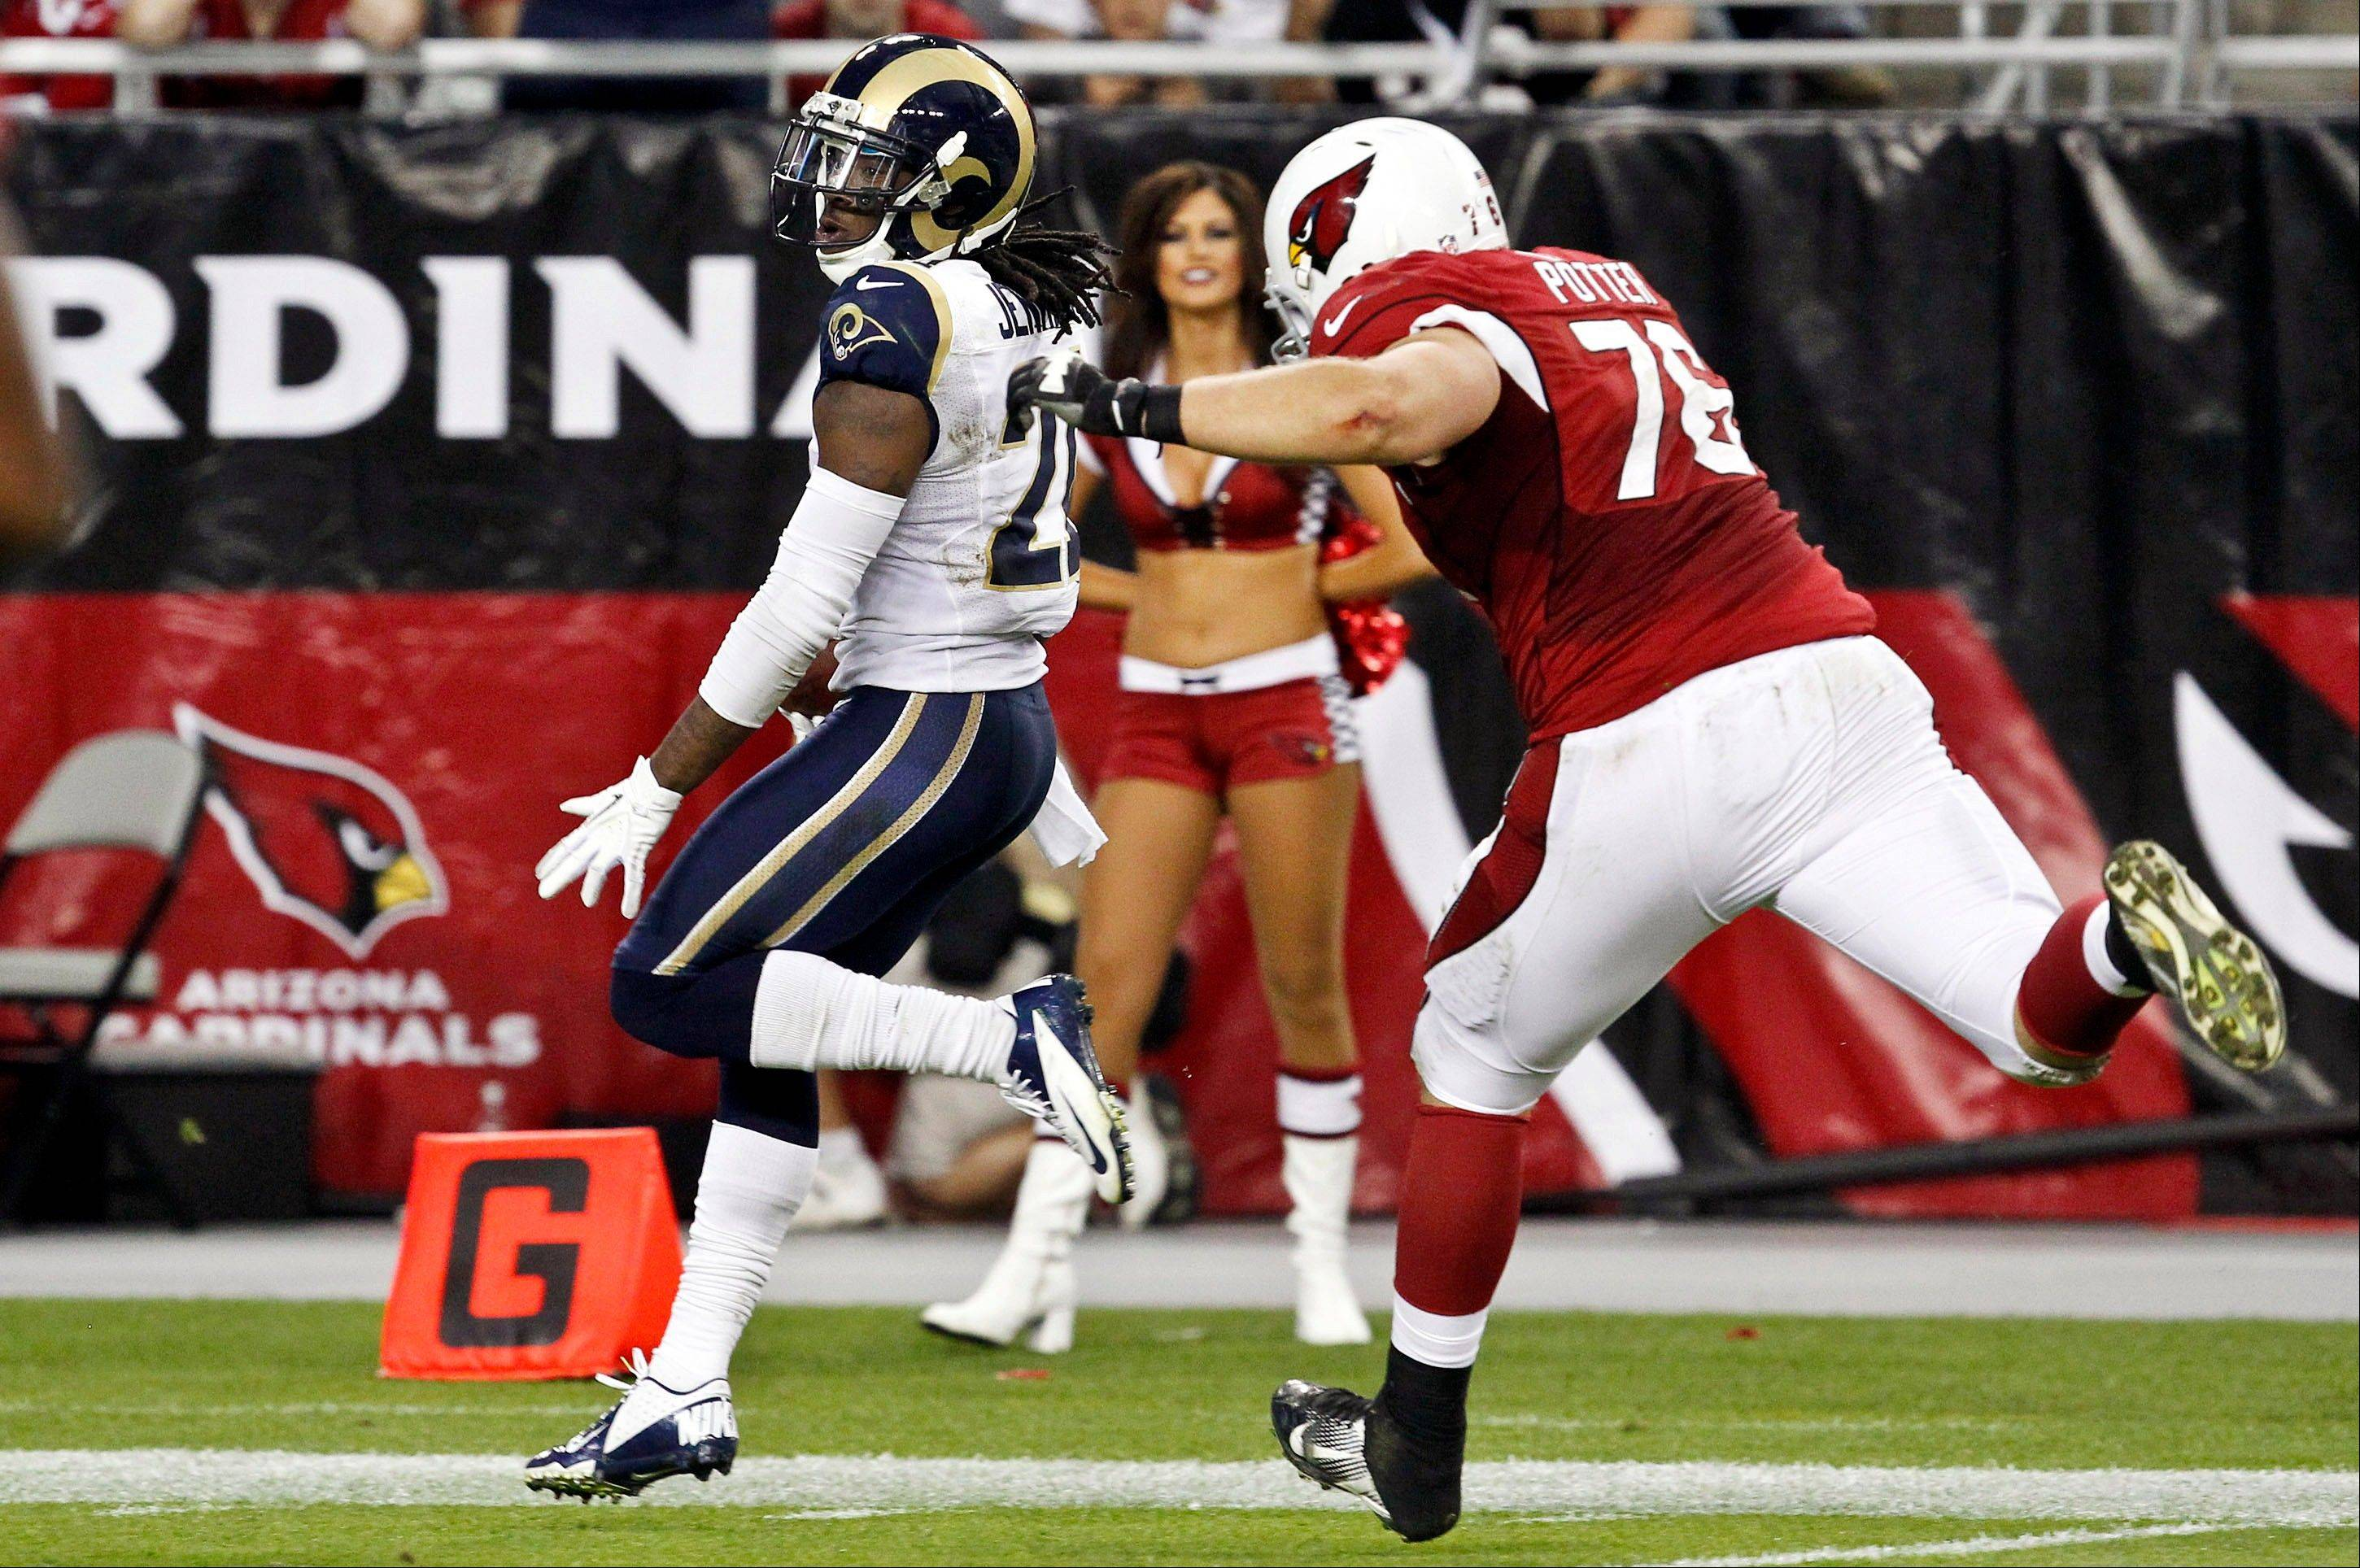 St. Louis Rams' Janoris Jenkins, left, returns an interception for a touchdown as Arizona Cardinals' Nate Potter gives chase during the second half Sunday, Nov. 25, 2012, in Glendale, Ariz. The Rams won 31-17.